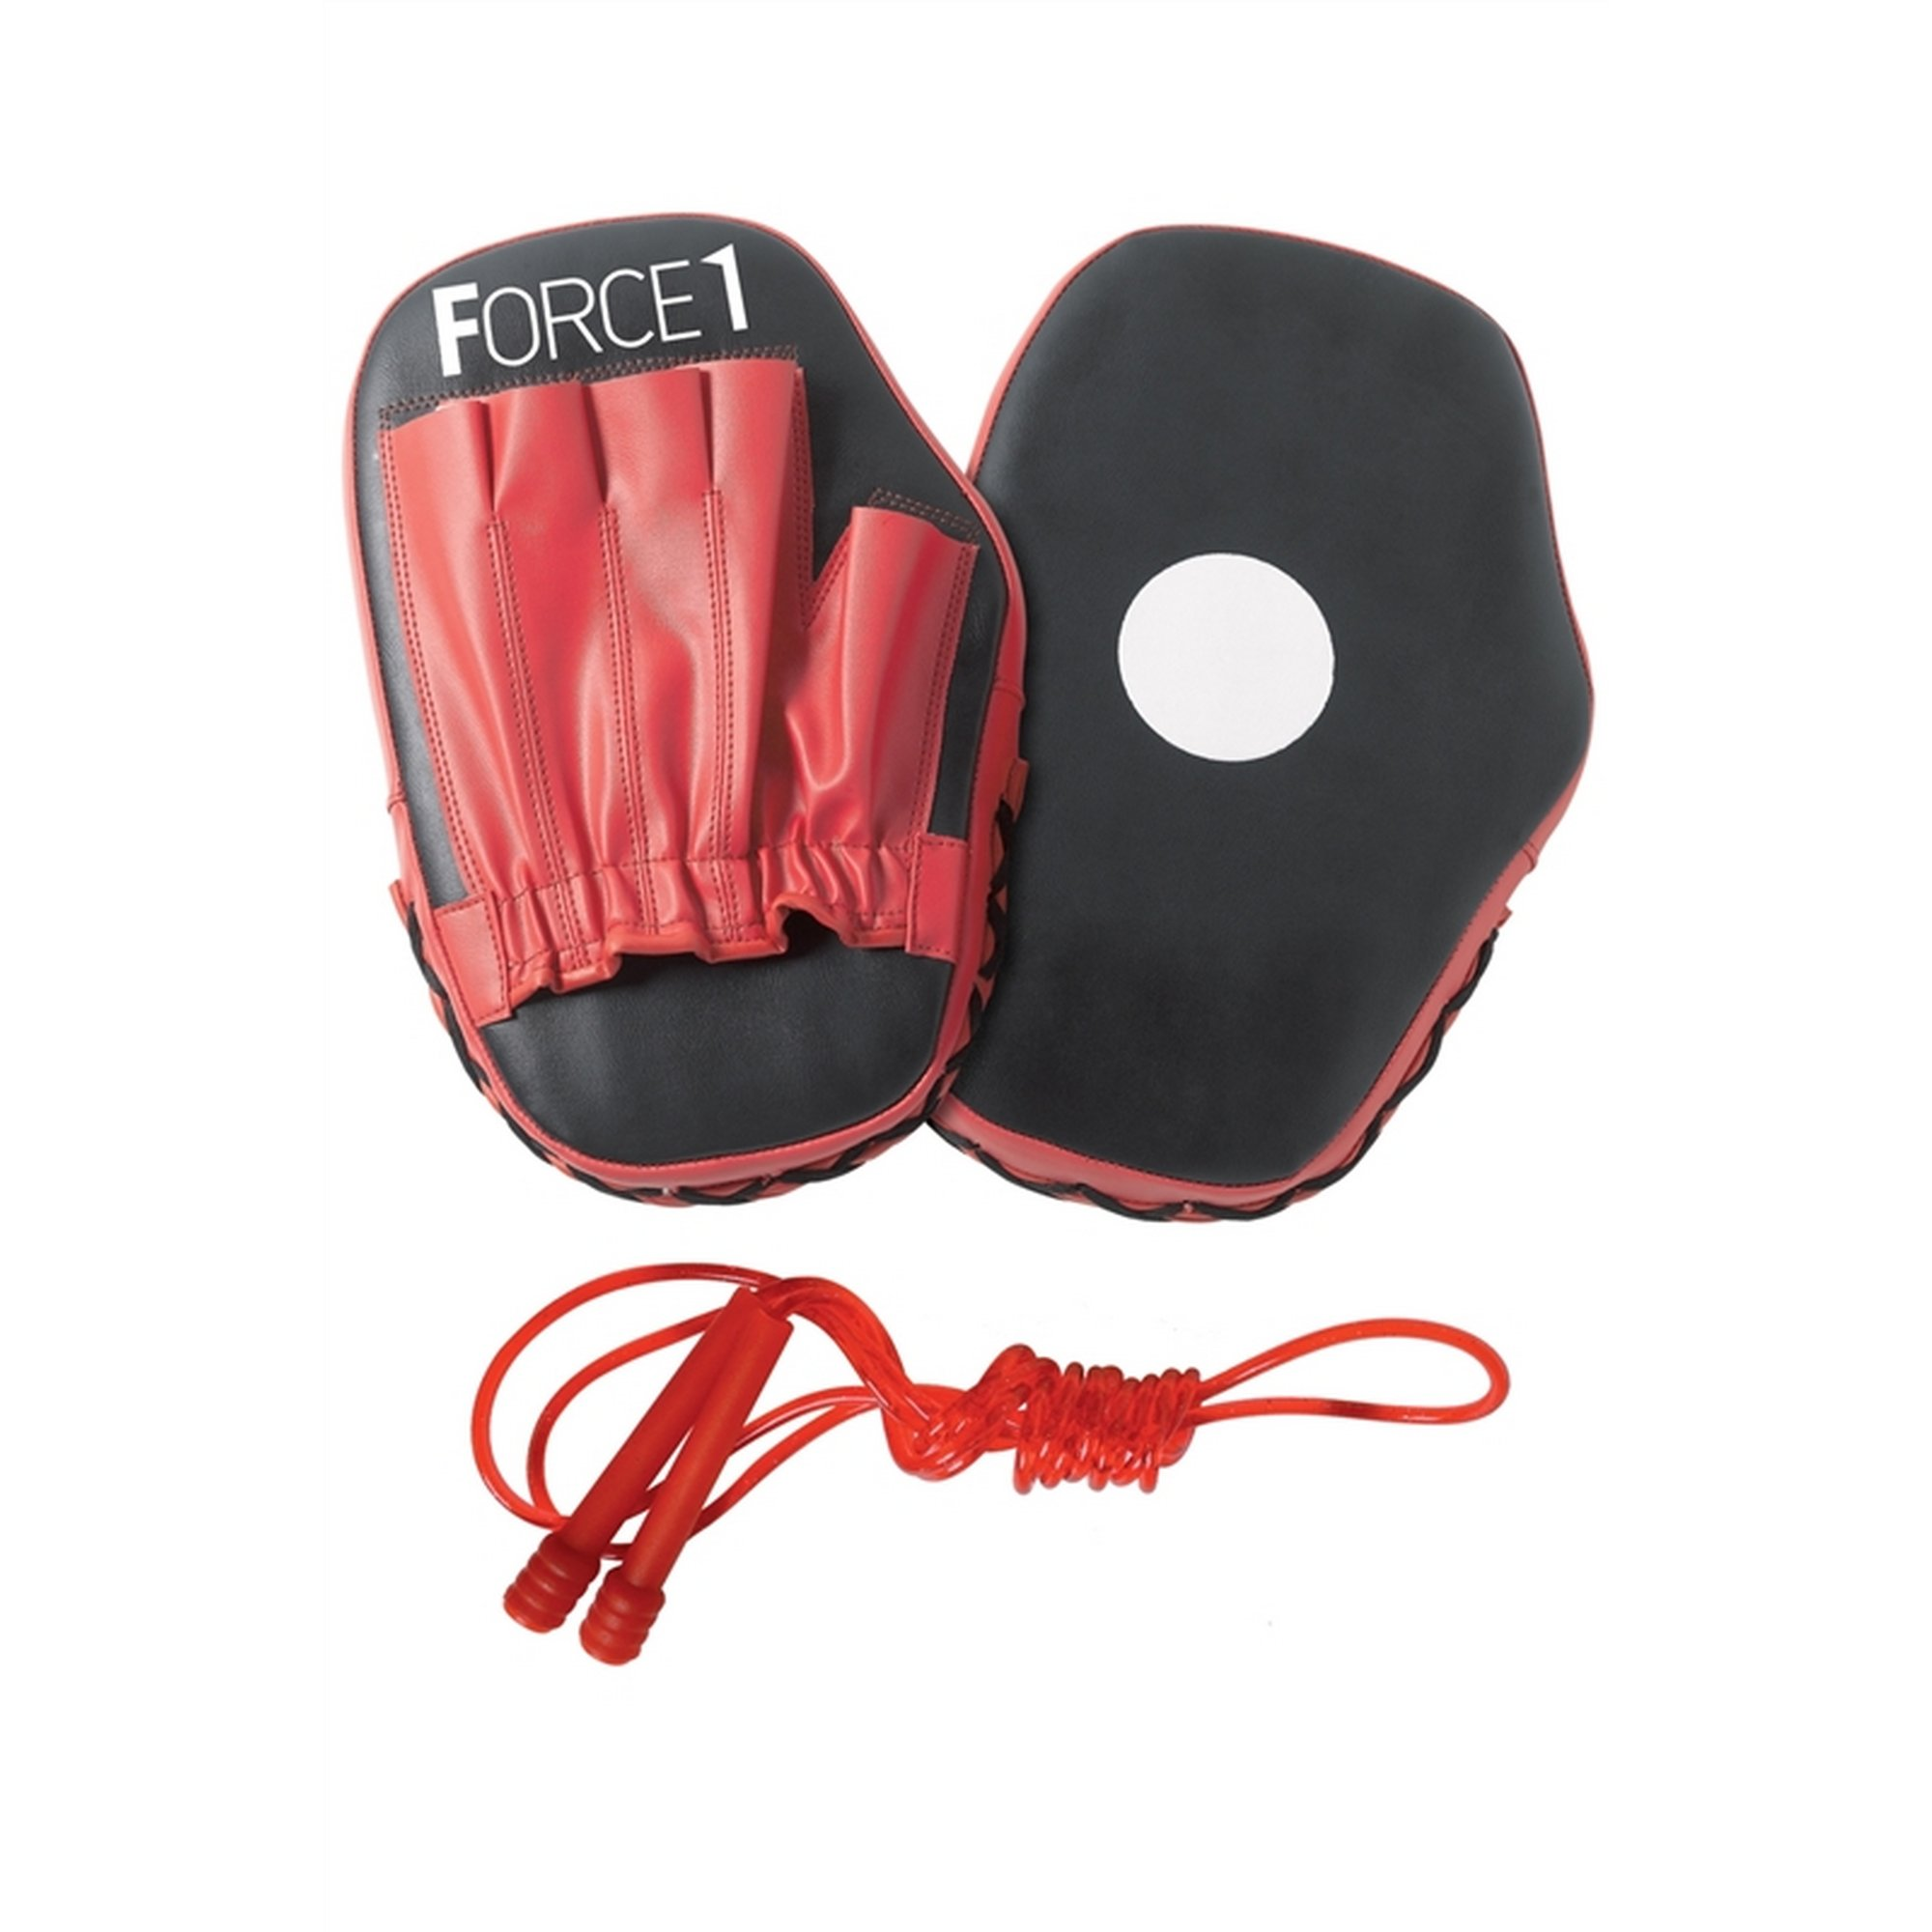 Image of Force 1 Focus Pads and Skipping Rope